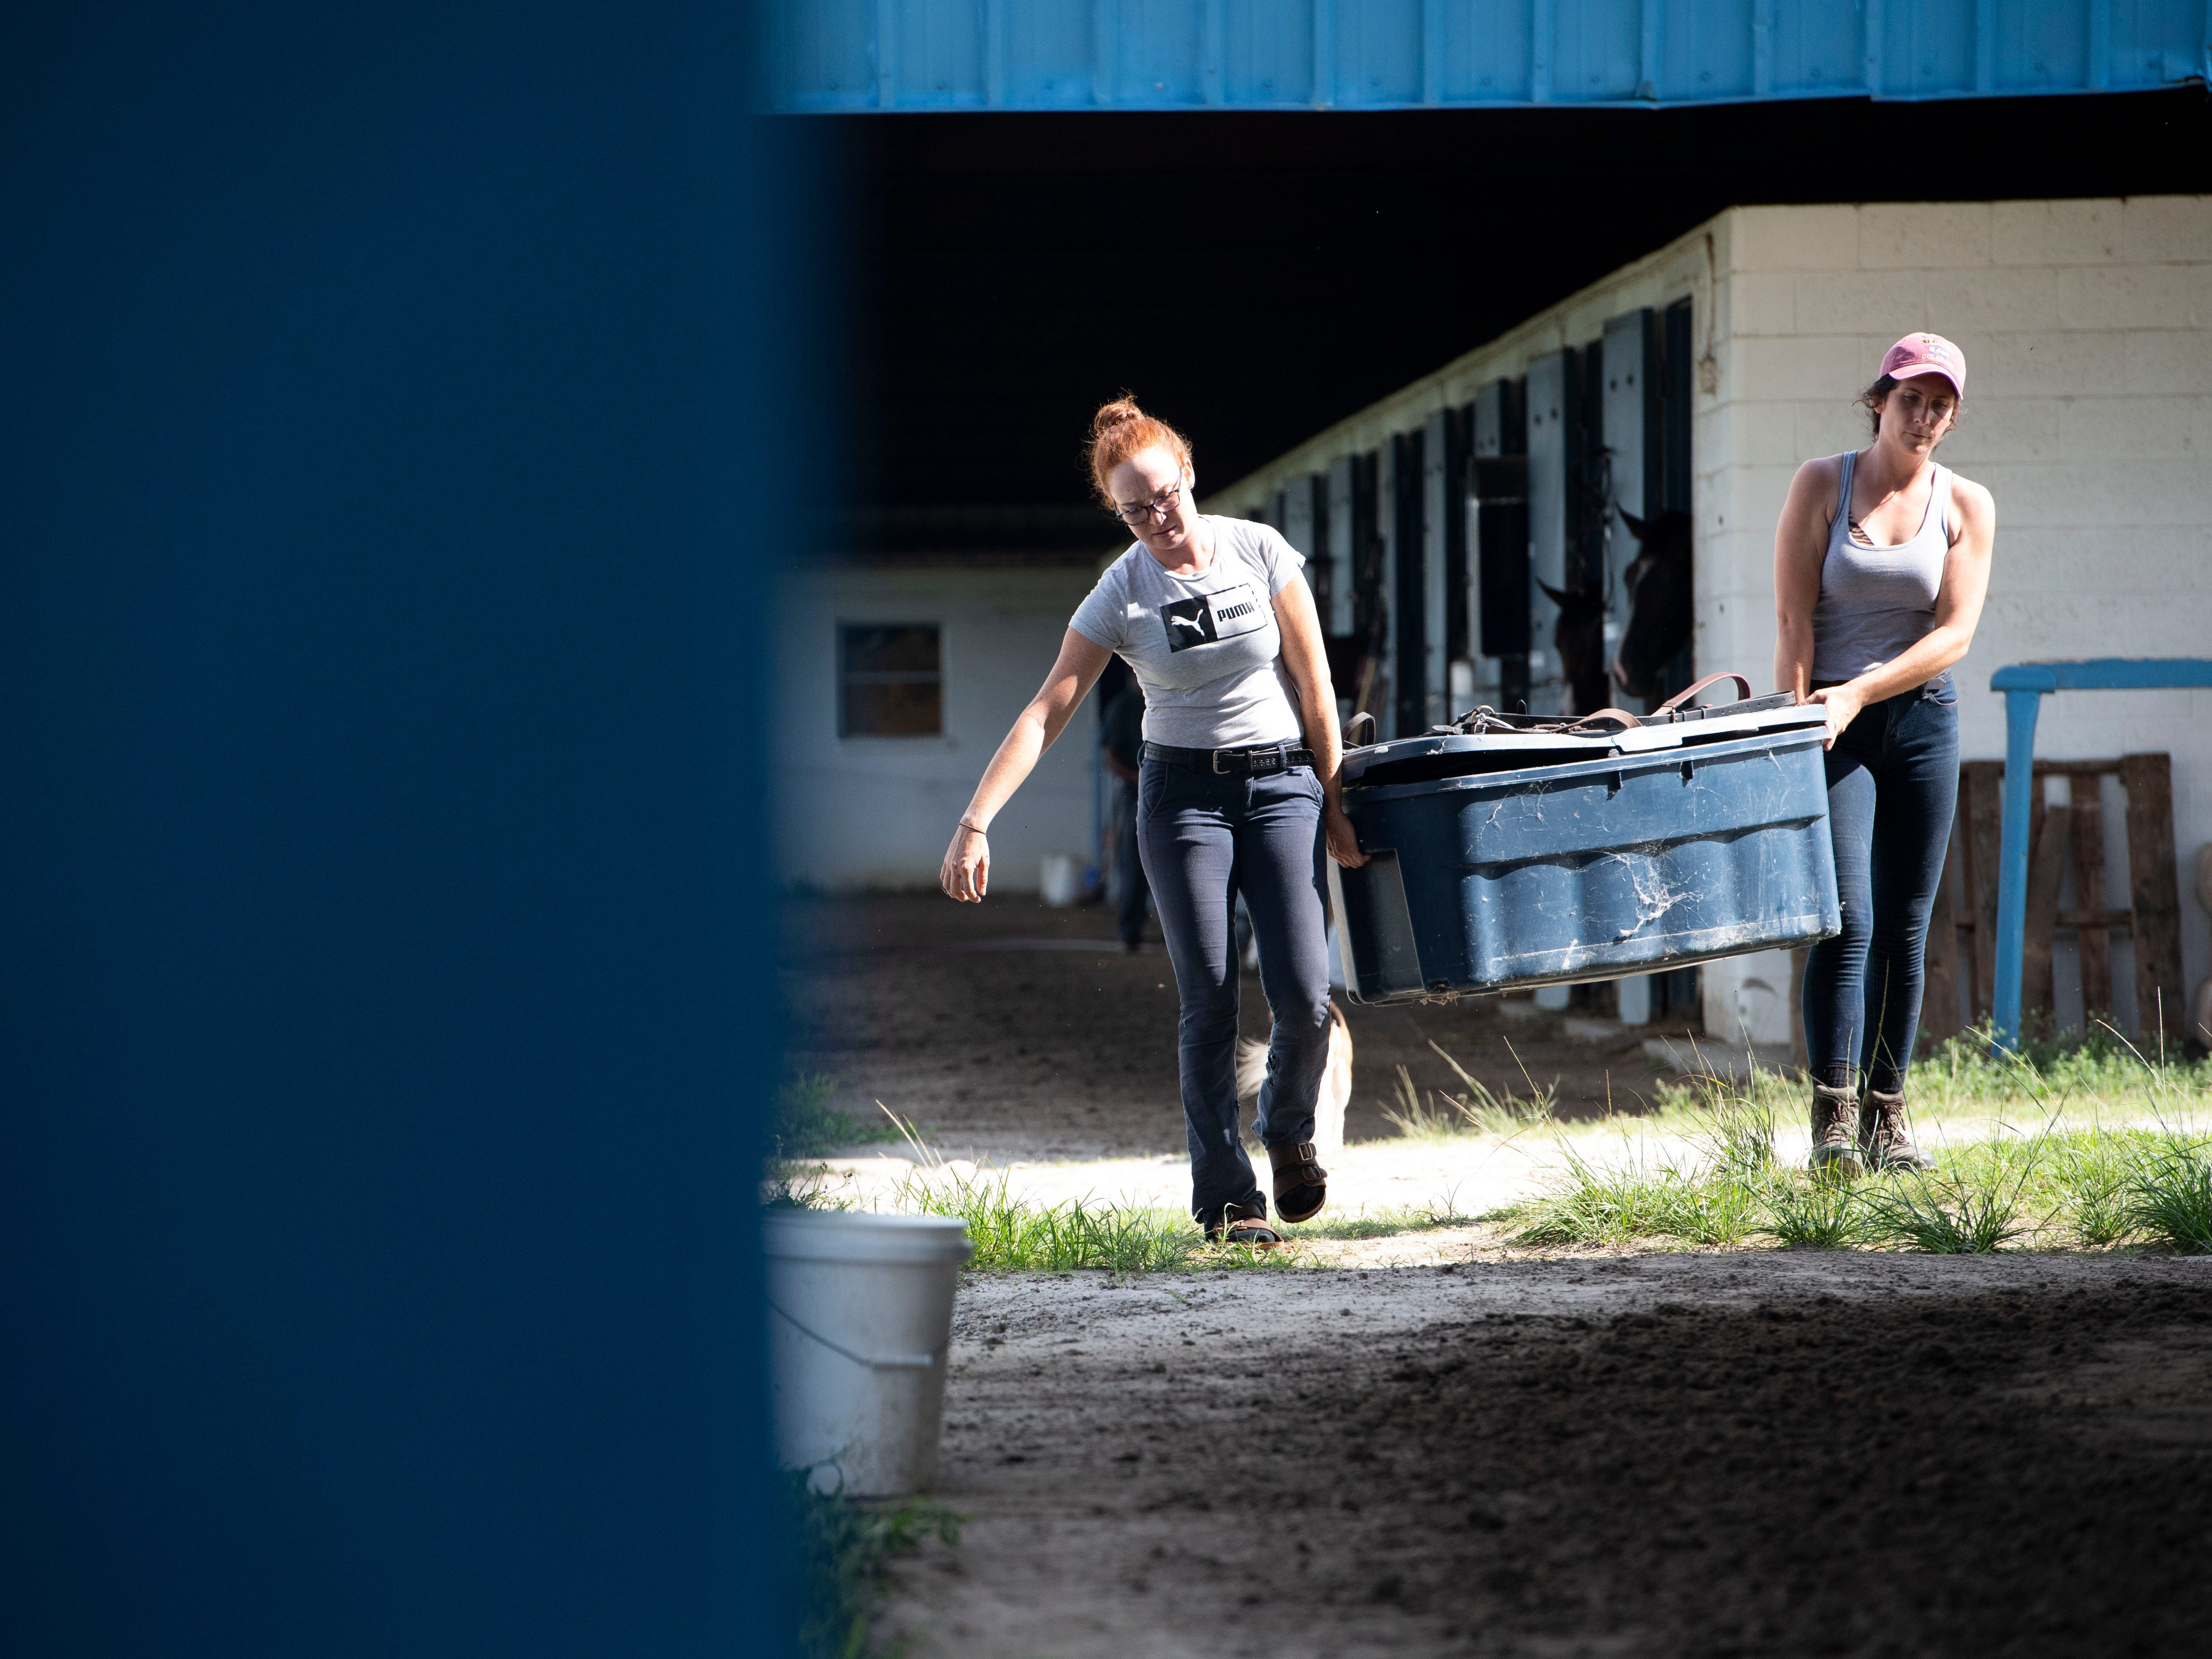 "Megan Johnston (left), exercise rider, and Jamie Riordan, assistant trainer, move items out of a Payson Park horse barn Thursday, May 9, 2019, at the training facility in Indiantown. Typically, young horses come to train on the property from November to May, and this year's group included Country House, Code of Honor and Tacitus, the top three finishers of the 145th Kentucky Derby. ""They both had big personalities,"" Riordan said, who helped train Country House and Tacitus. ""(Country House) doesn't focus a ton, but he is one of the most athletic horses I've ever met in my life. Tacitus came in looking like a donkey. As we developed him... he's the perfect specimen now. He really grew into his body."""